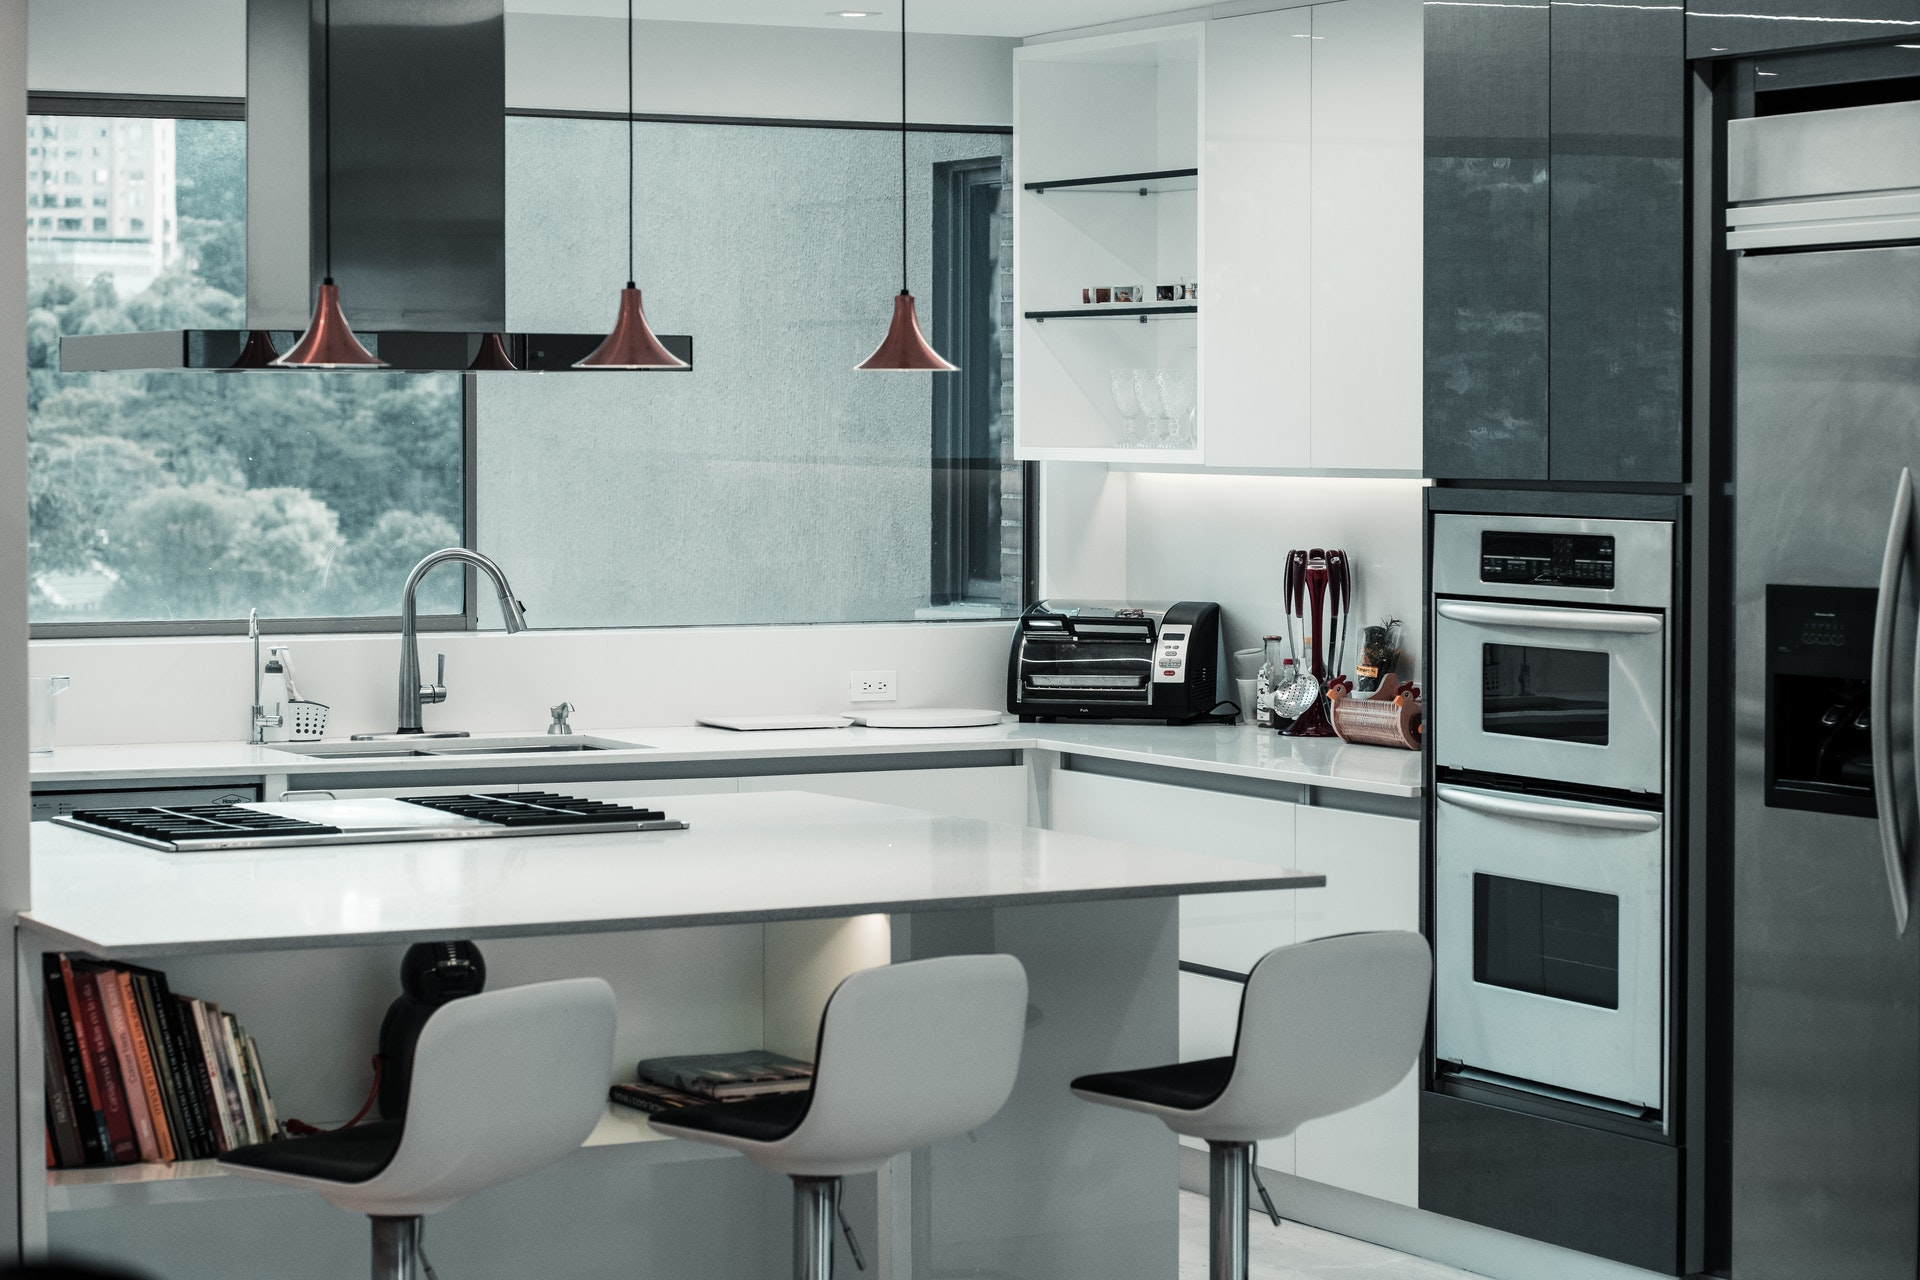 upscale modern kitchen with steel appliances